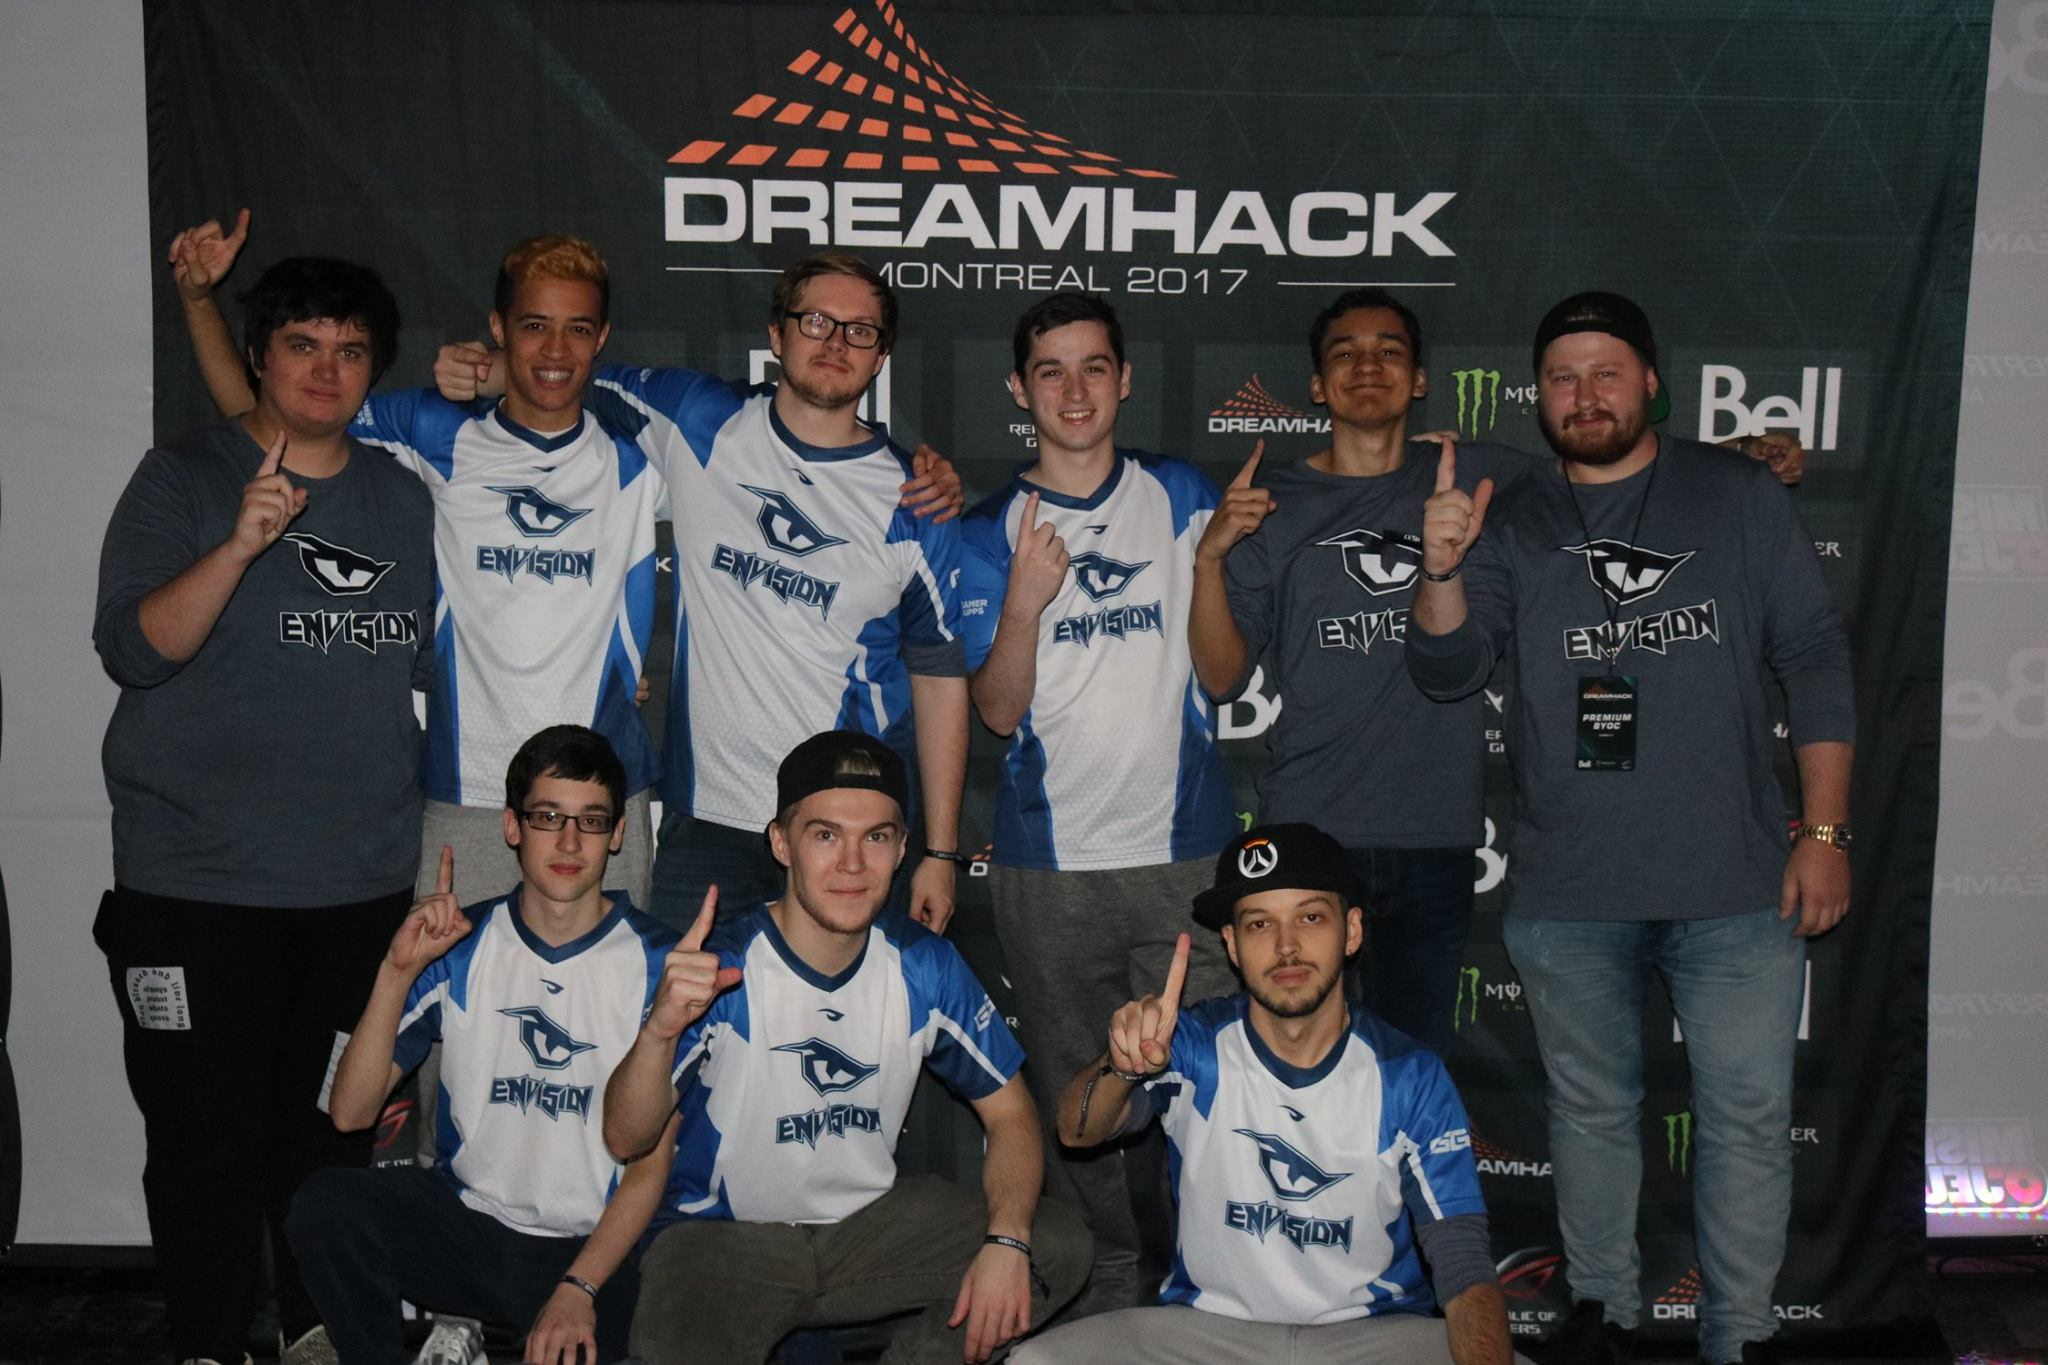 EnVision at DreamHack Montreal 2017